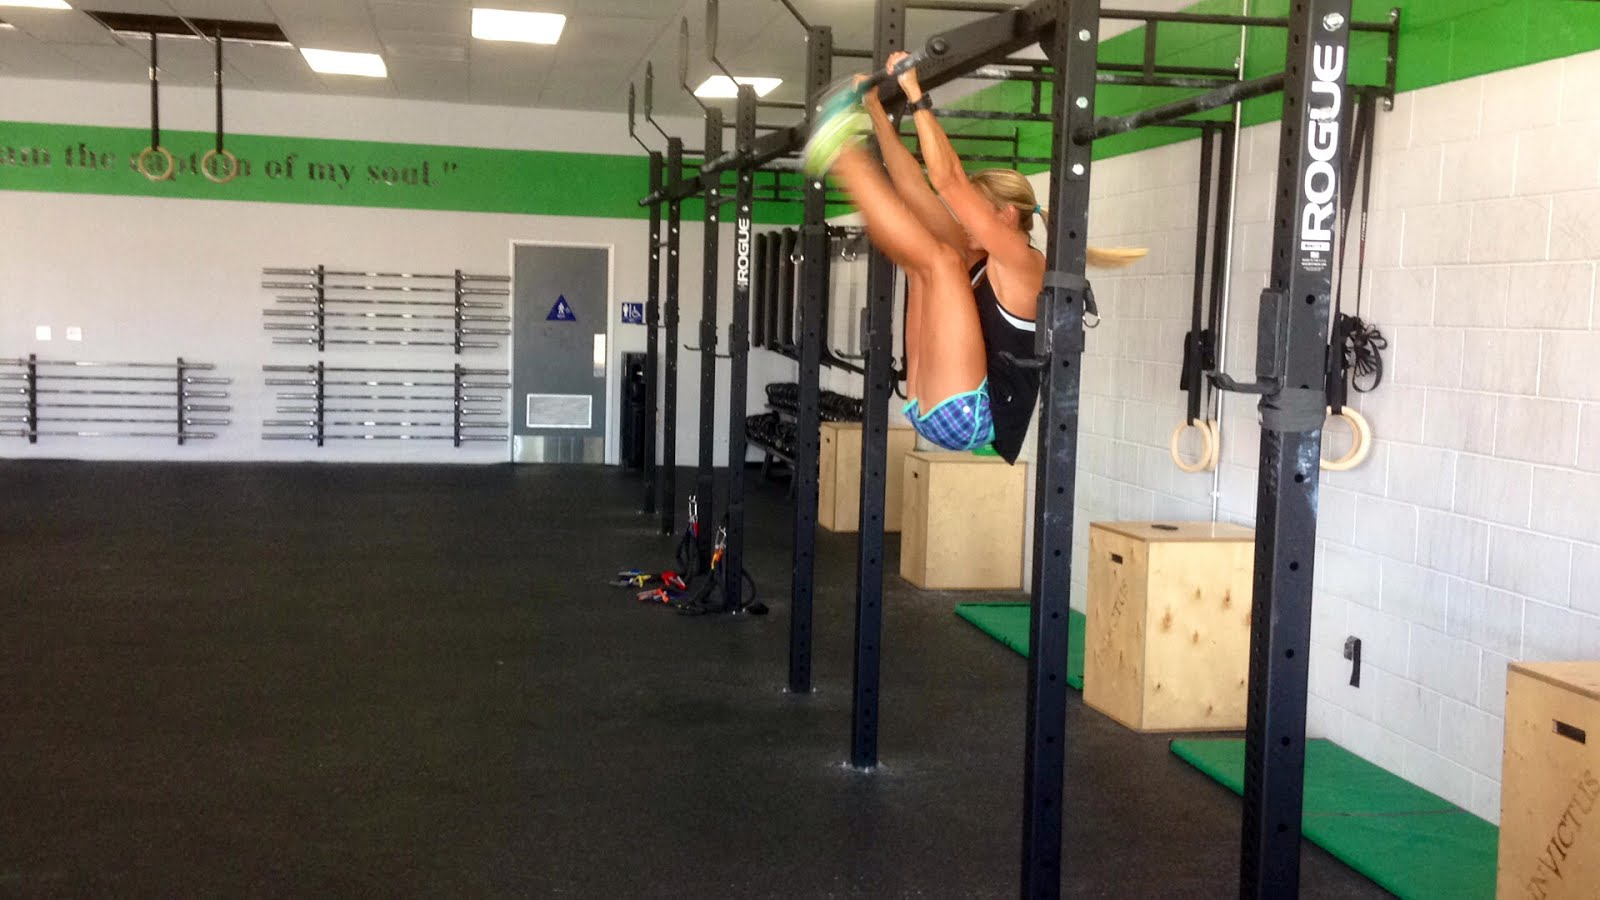 Kipping Toes to Bar by Lindsey Johnson of CrossFit Invictus San Diego